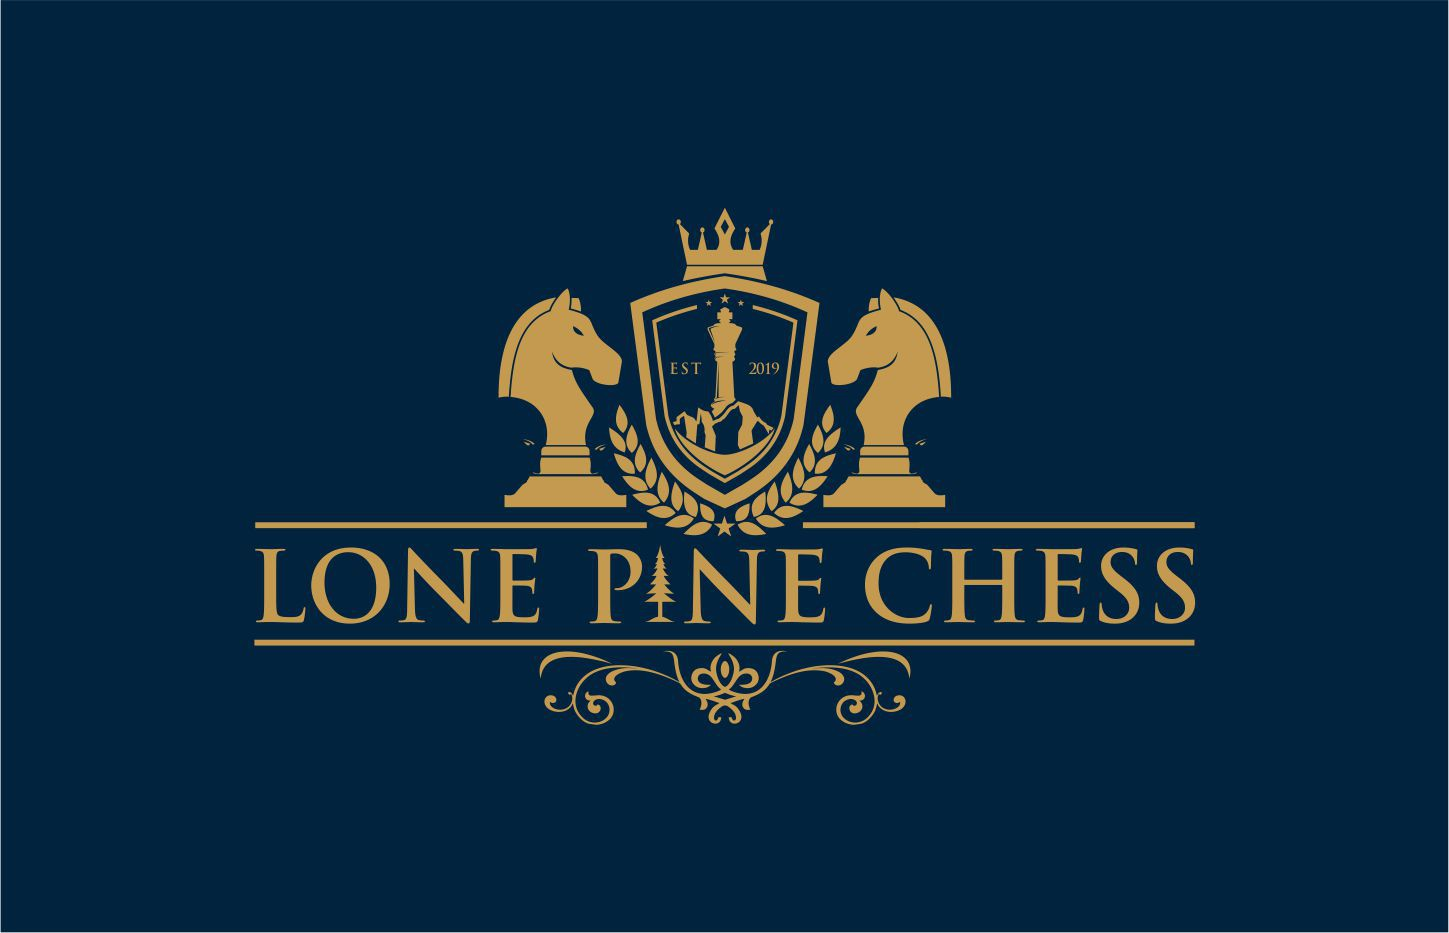 Lone Pine Chess Club needs a fighting design!